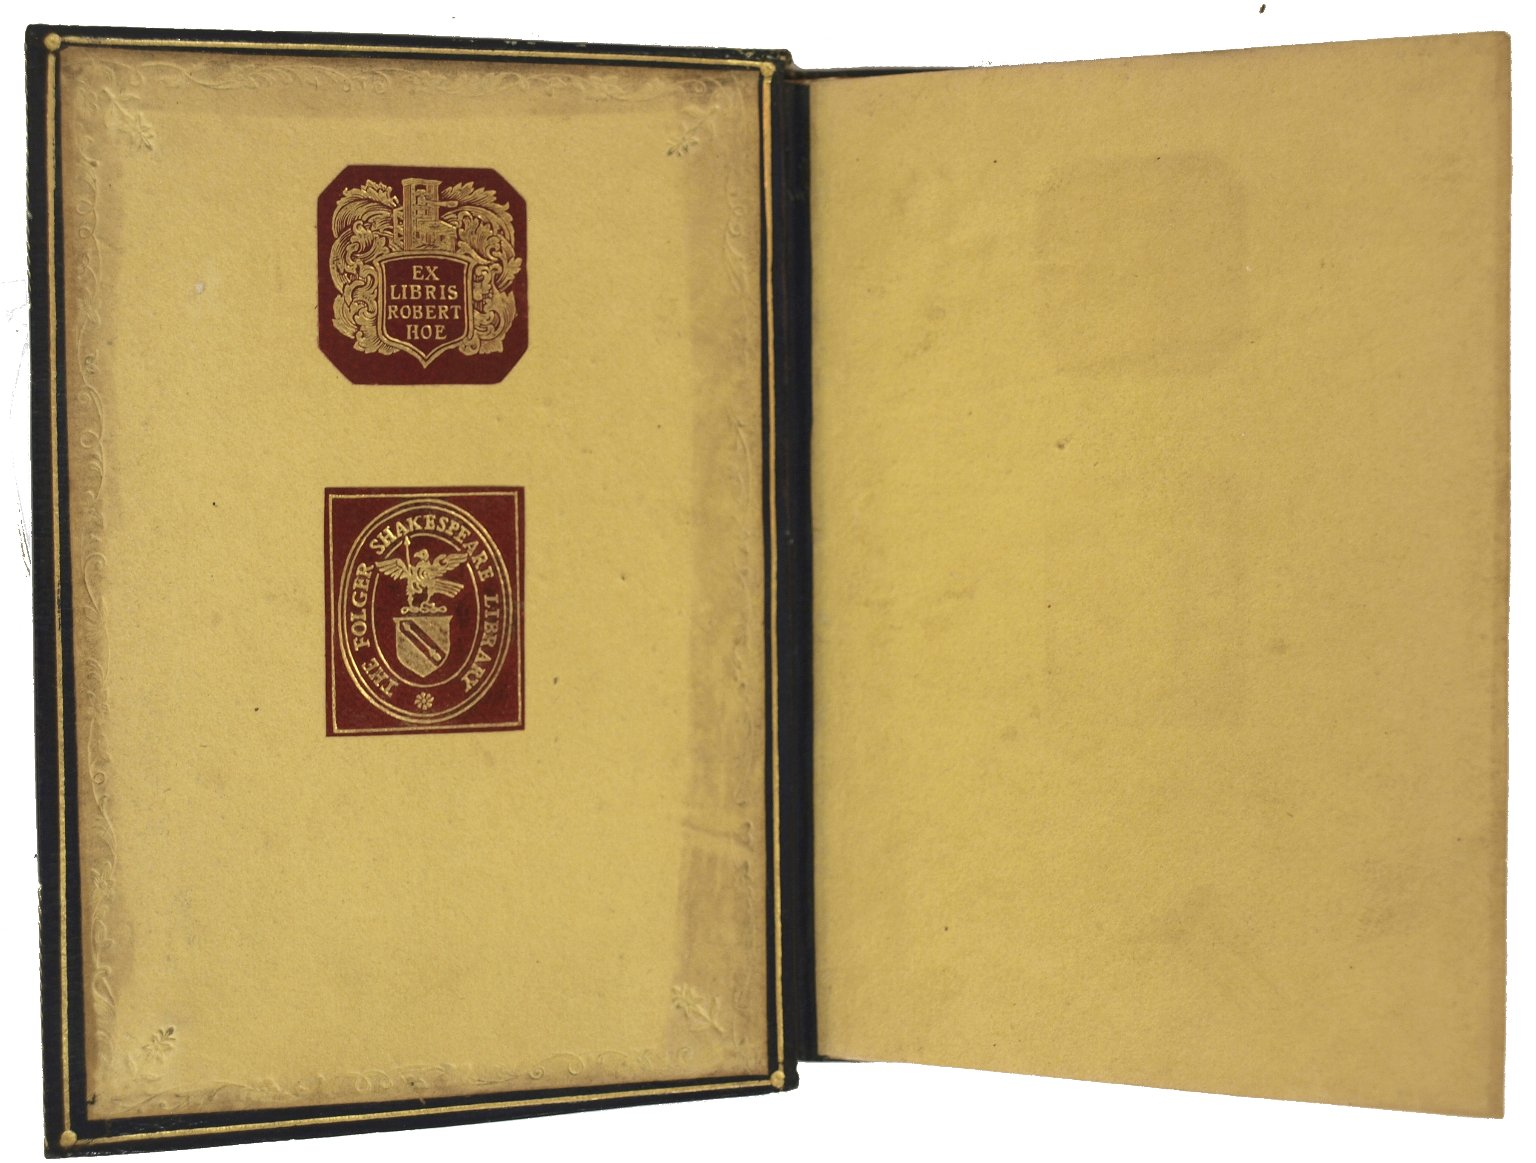 Inside front cover, STC 19332.